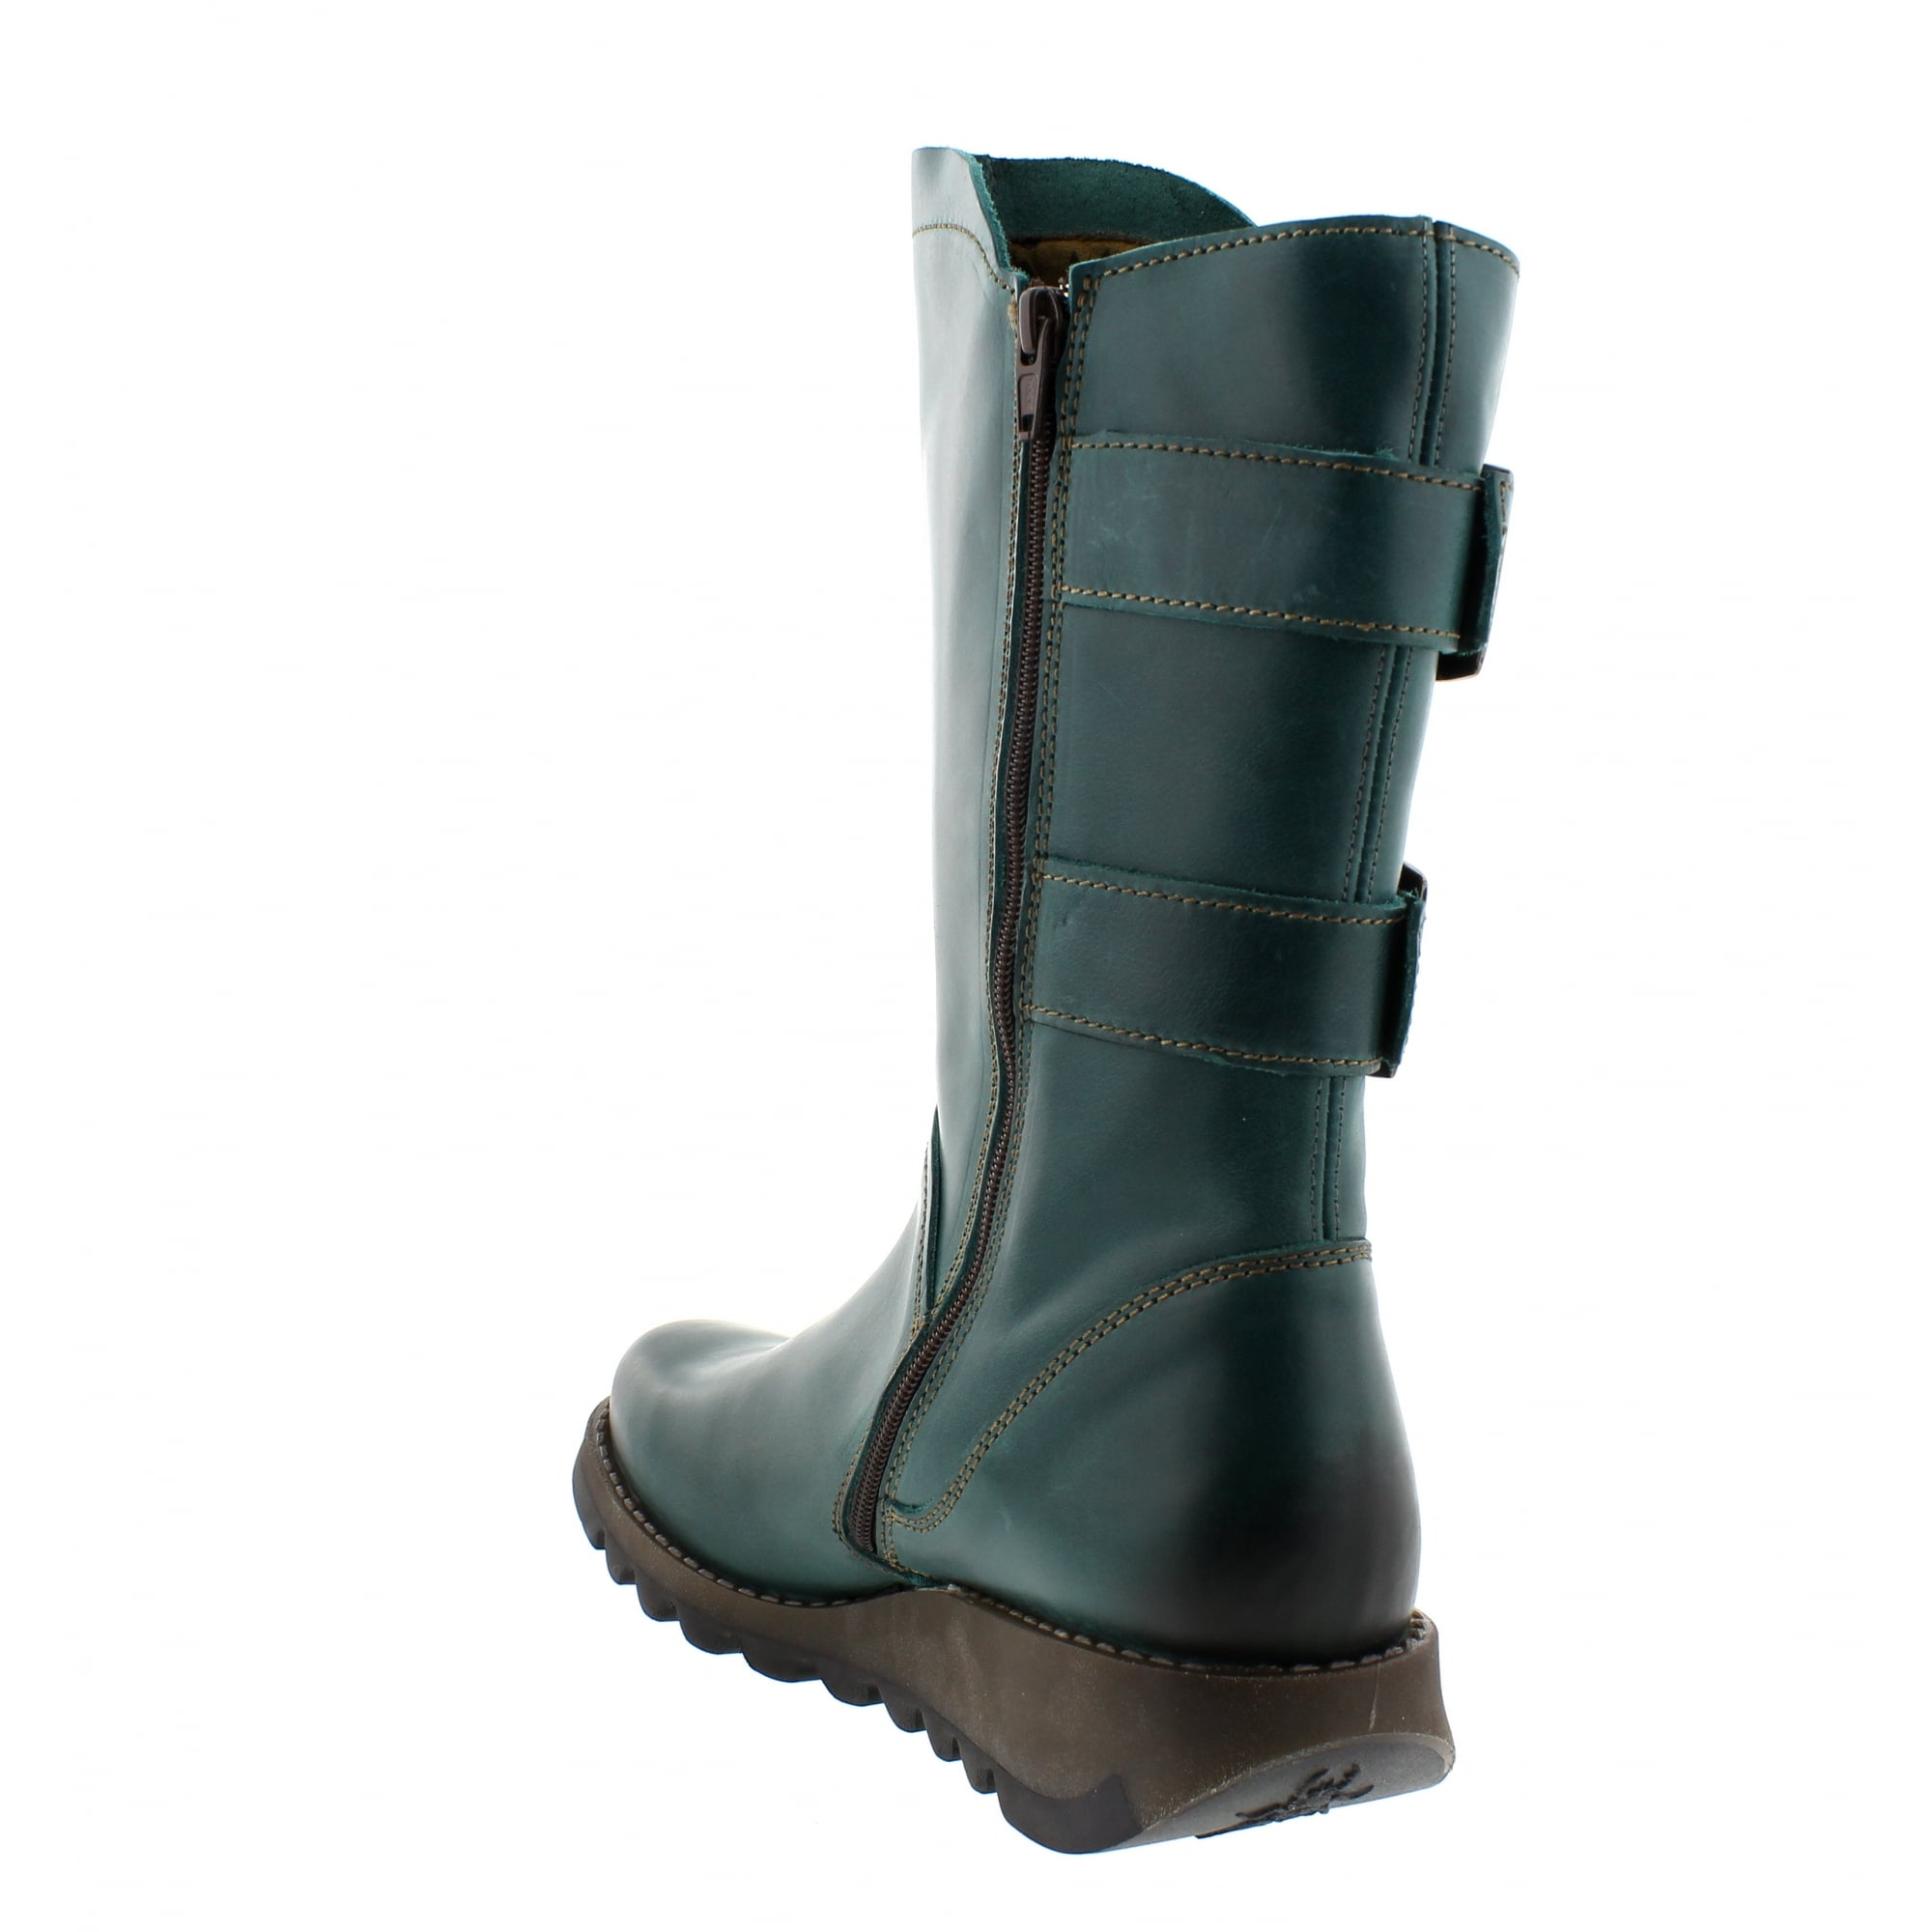 Fly London Sack Mid Calf Boots Teal